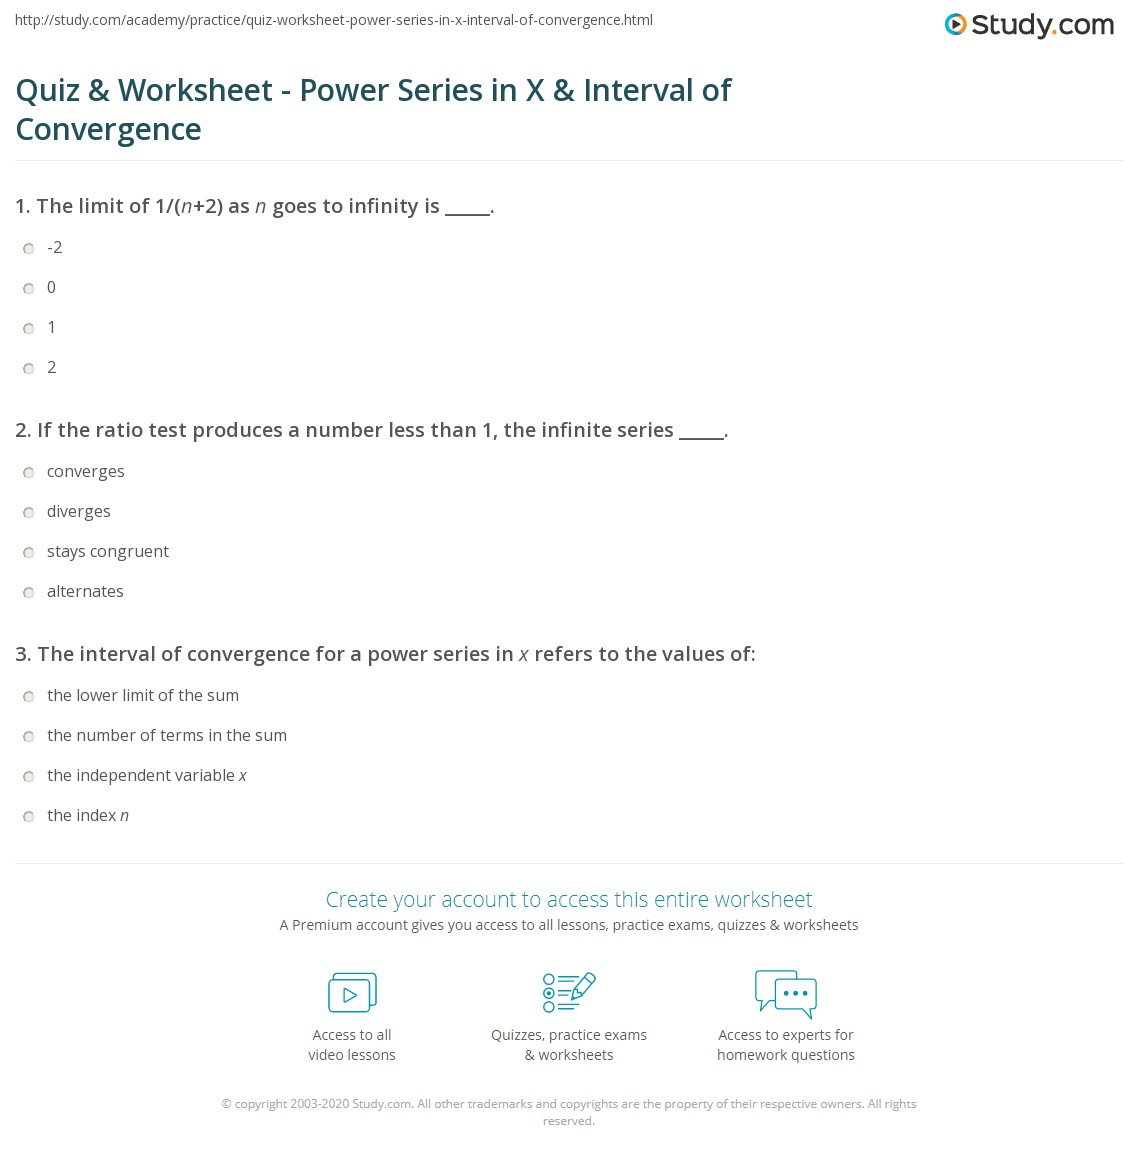 quiz worksheet power series in x interval of convergence. Black Bedroom Furniture Sets. Home Design Ideas